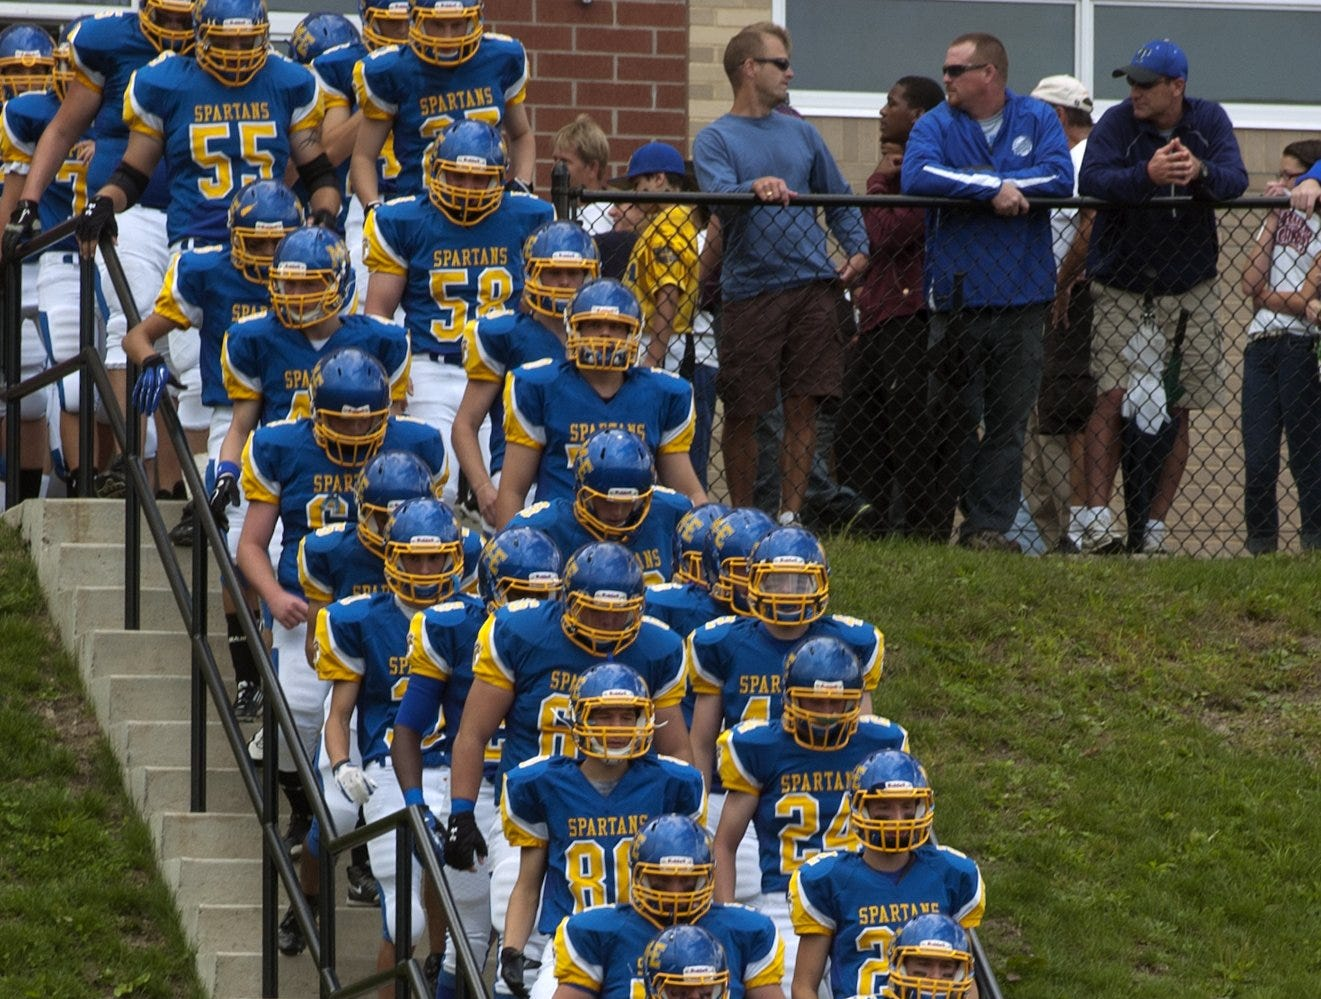 In 2012, the Maine-Endwell Spartans had won 23 consecutive games.